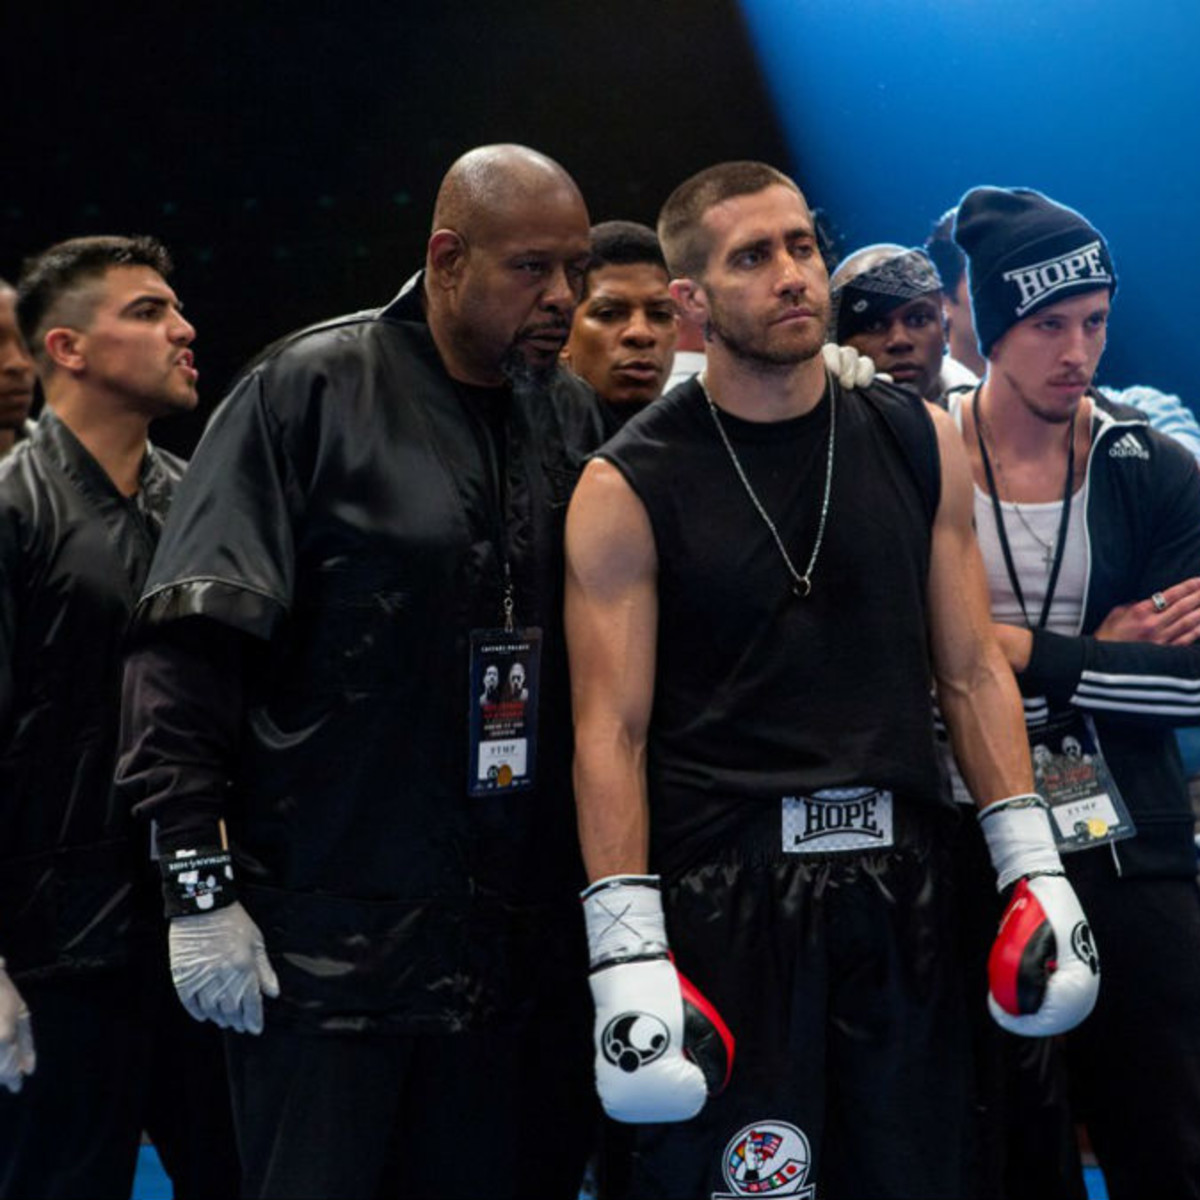 Forest Whitaker and Jake Gyllenhaal in Southpaw